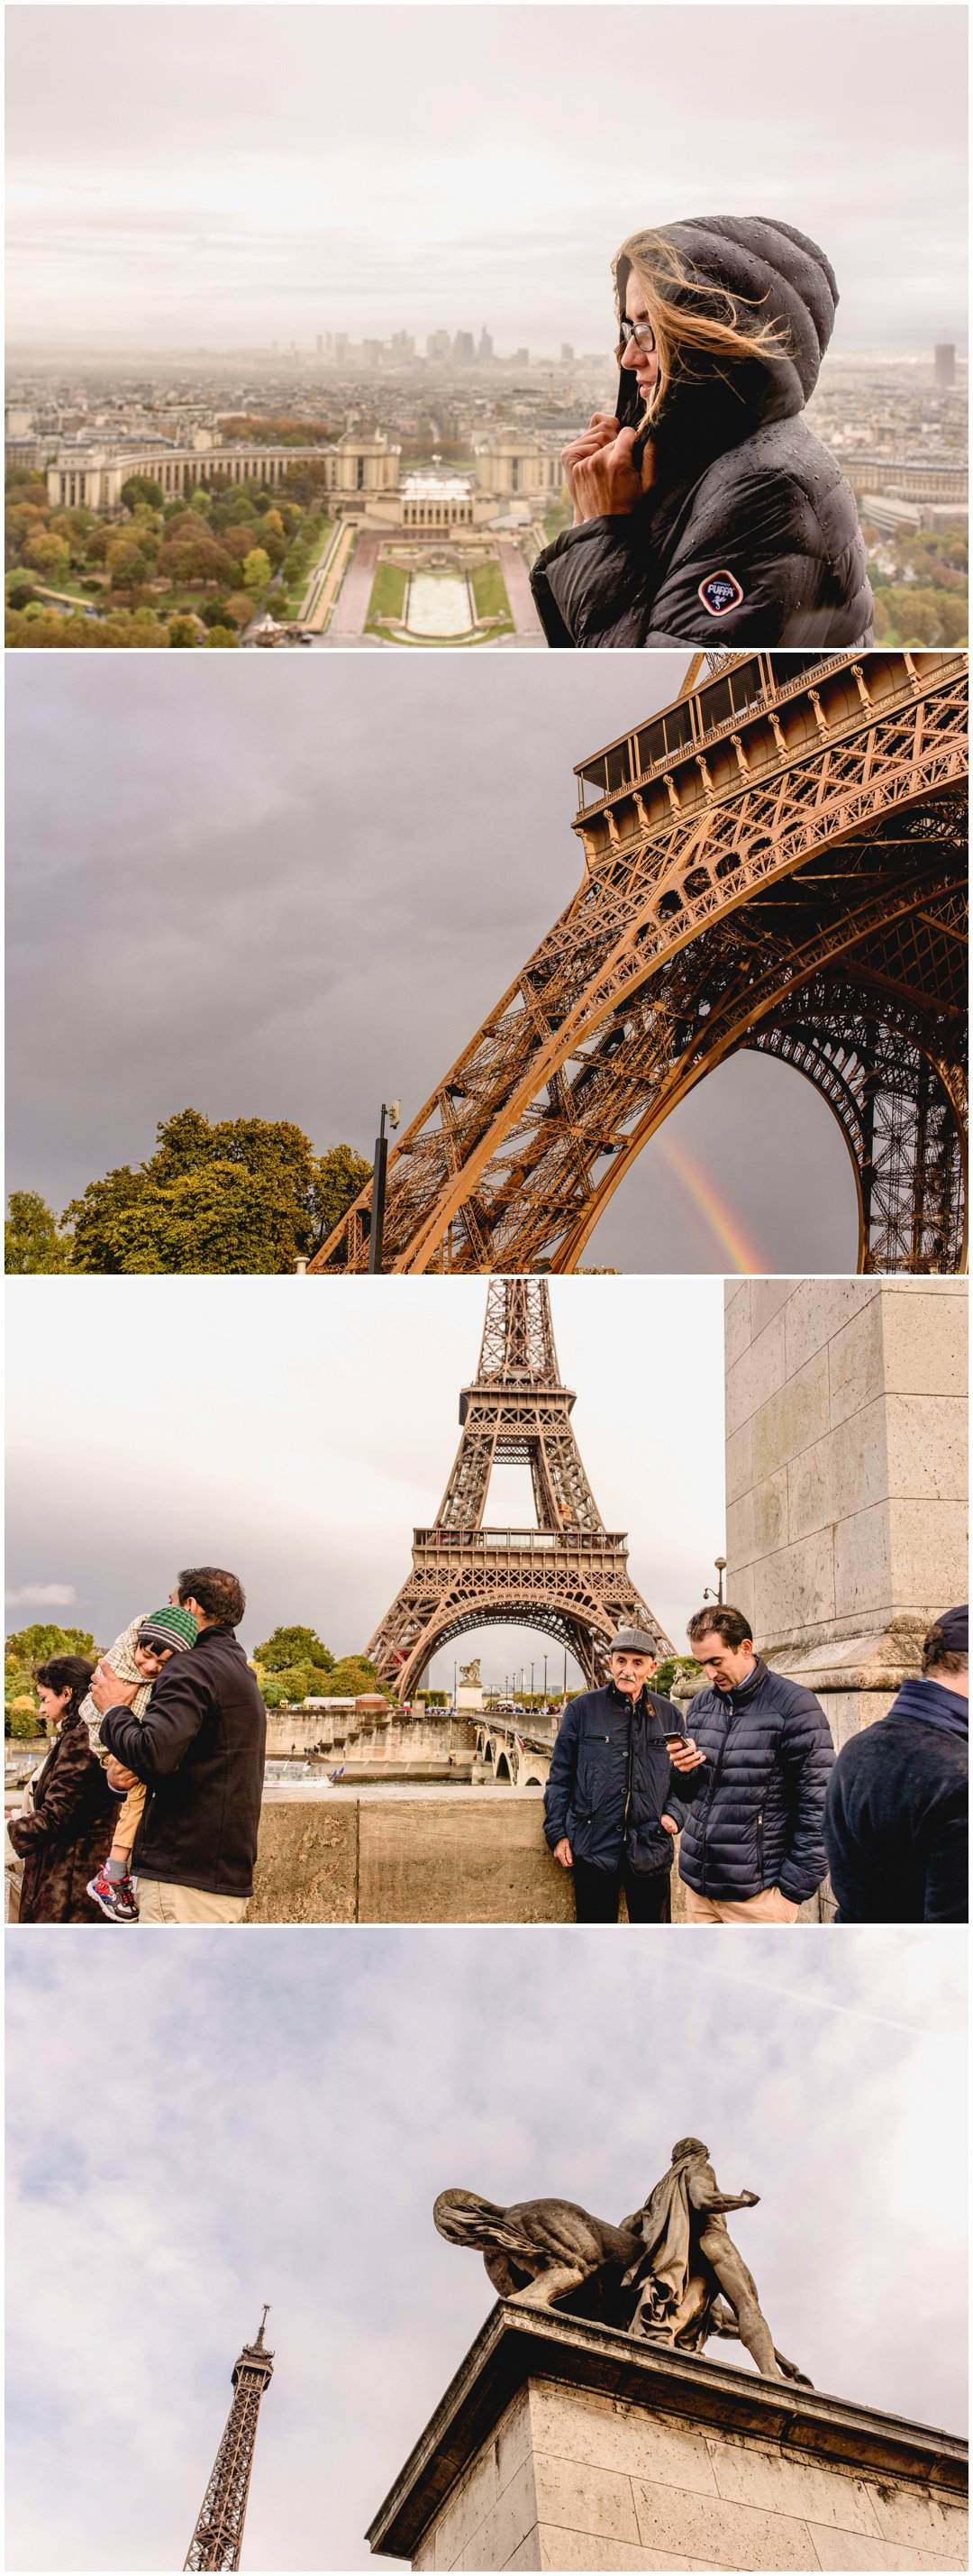 Paris street photography at The Eiffel Tower and travel photography by Lisa Carpenter Photography, West Midlands Wedding photographer, personal photo journal for ten year wedding anniversary celebrations